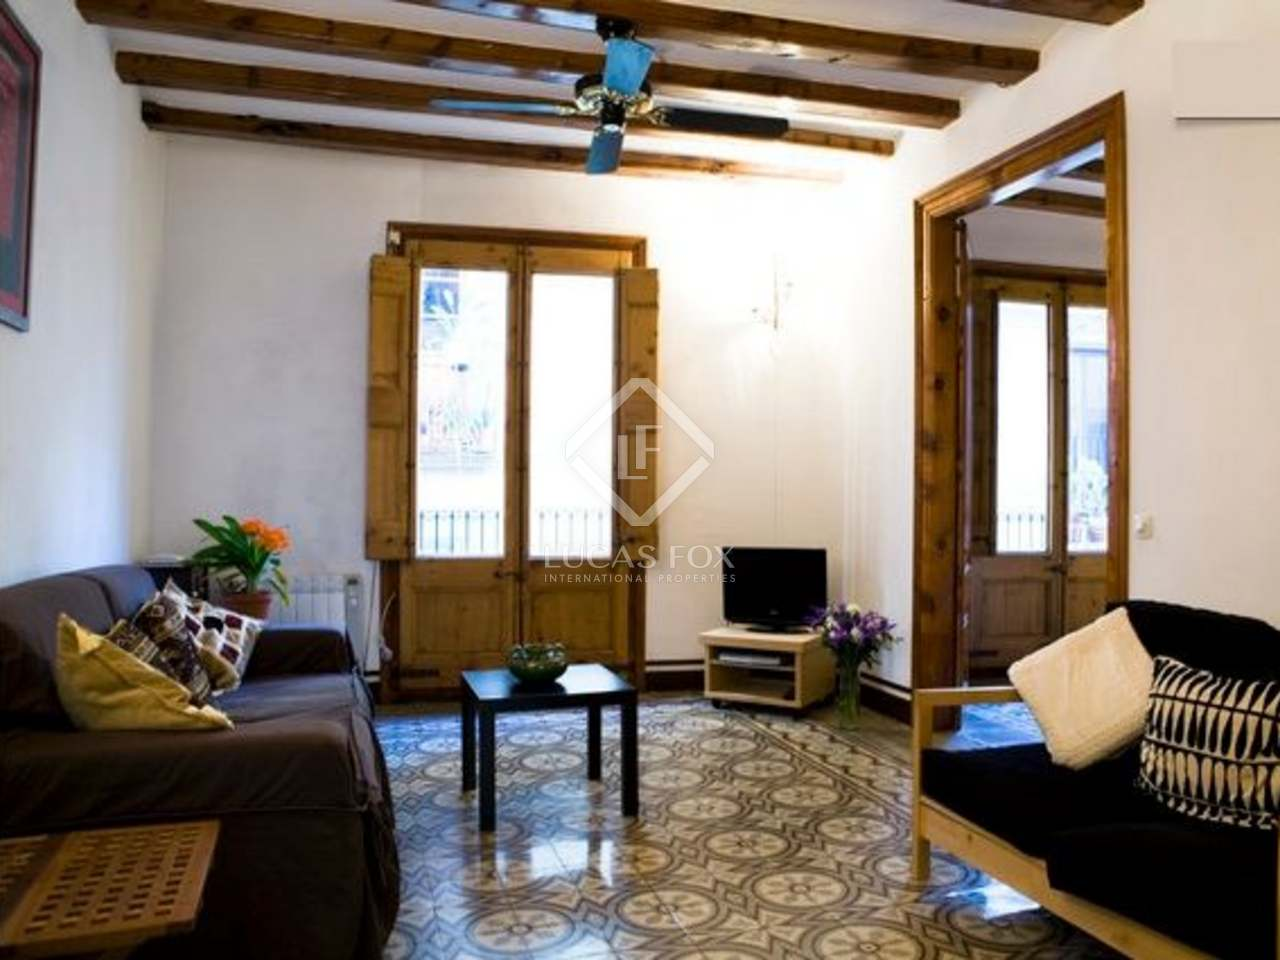 Apartment for rent in the Old Town, Barcelona